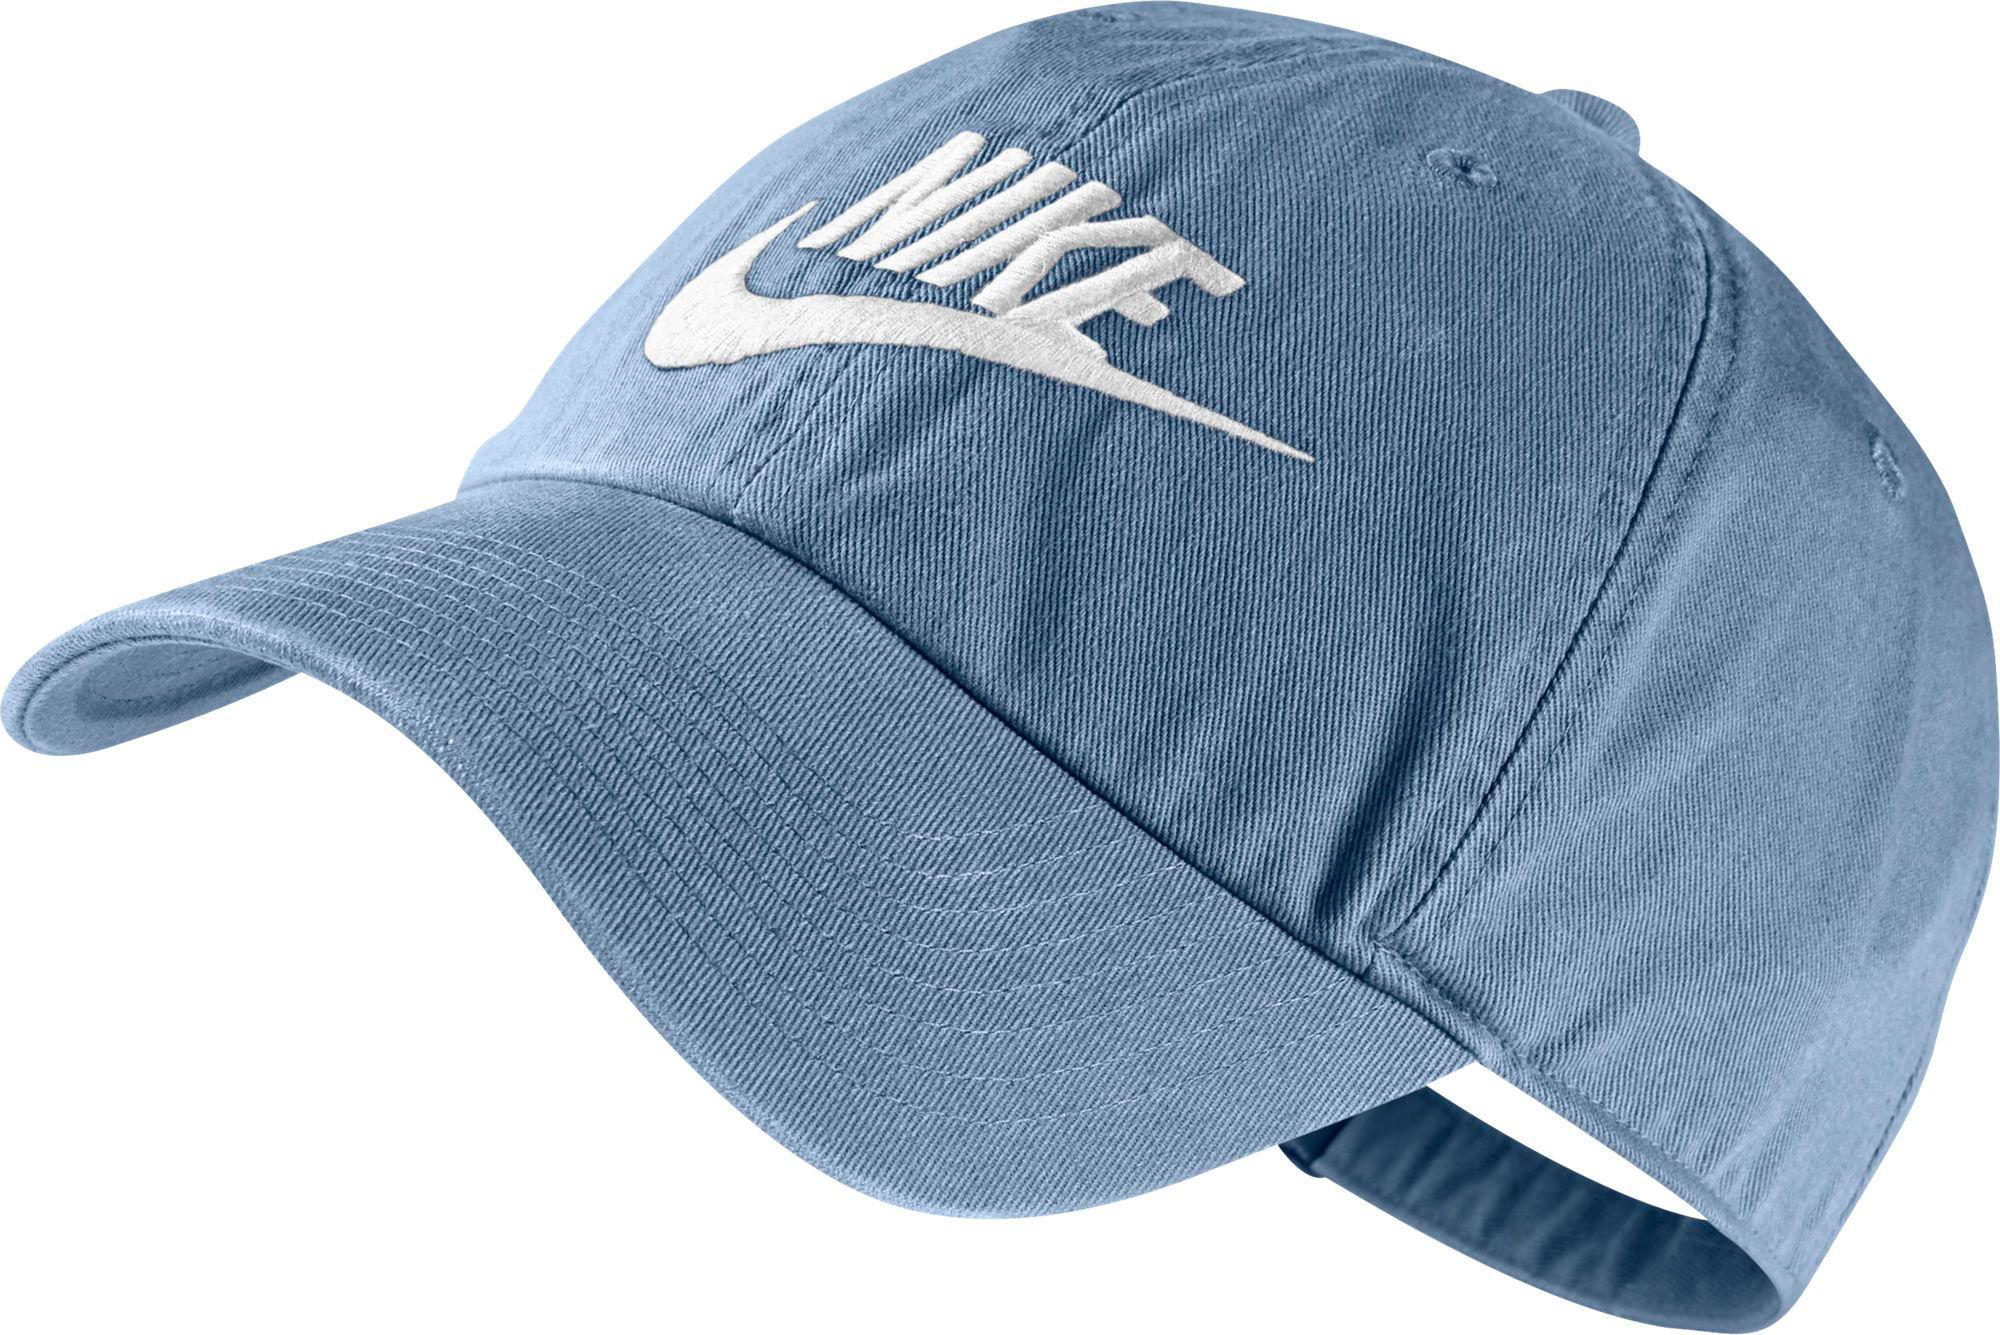 d867276a24f Lyst - Nike Heritage 86 Futura Adjustable Hat in Blue for Men